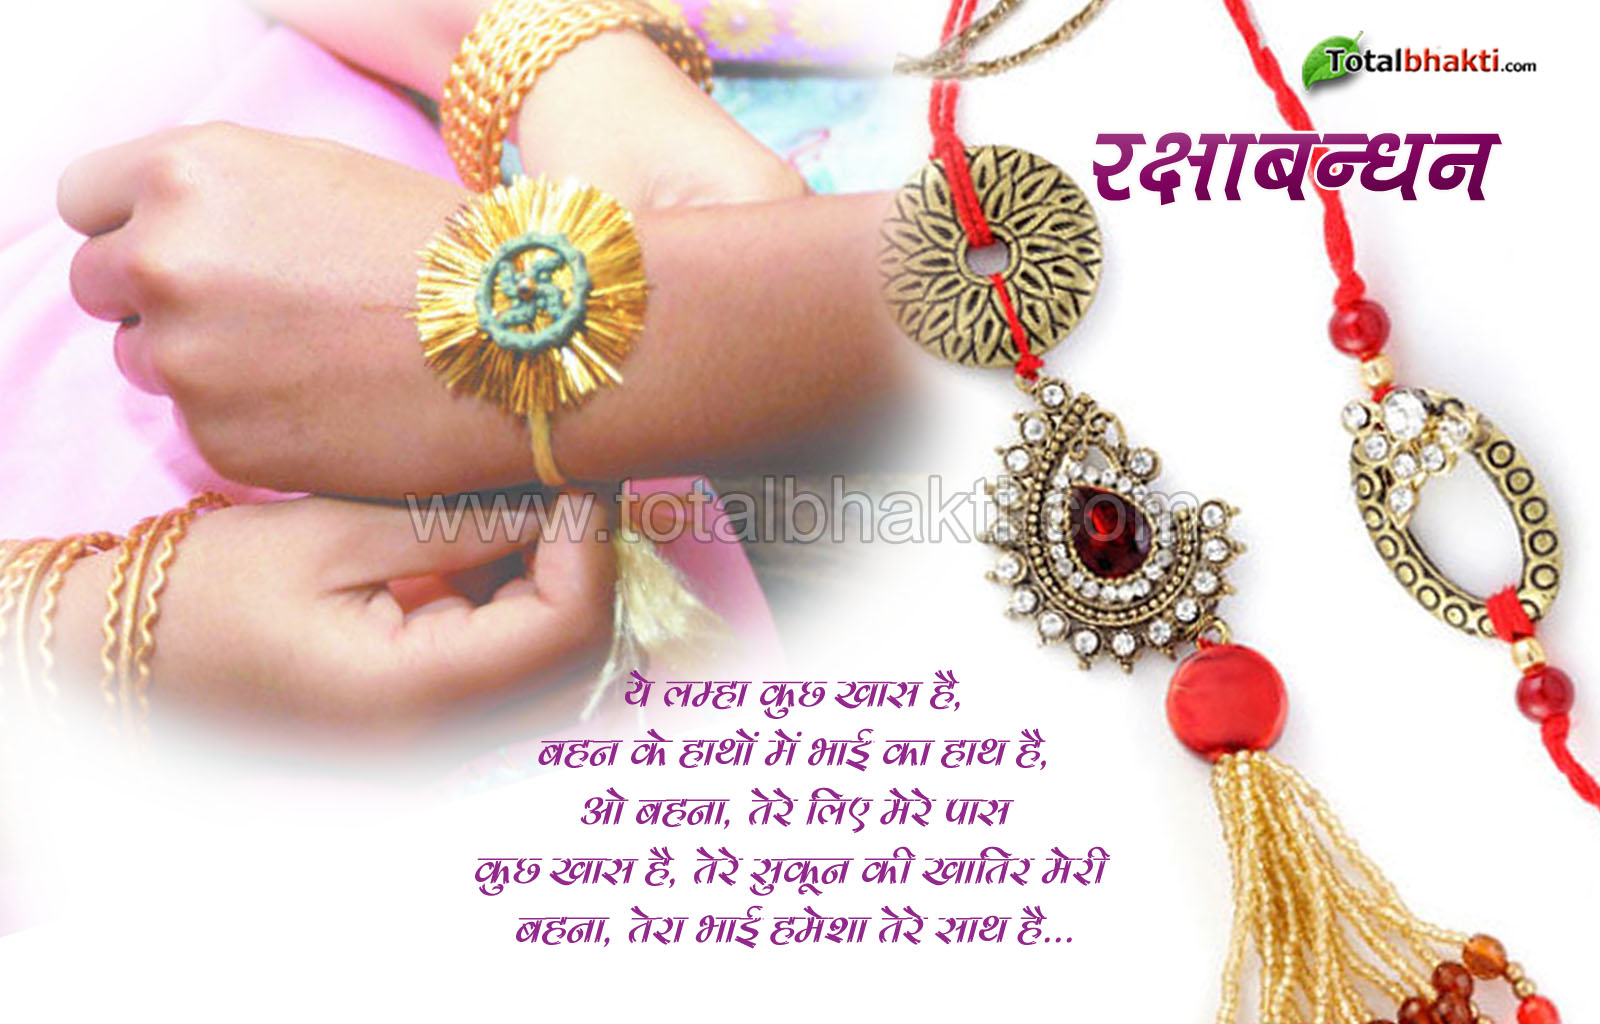 best raksha bandhan images hd hd photos raksha bandhan hd pictures